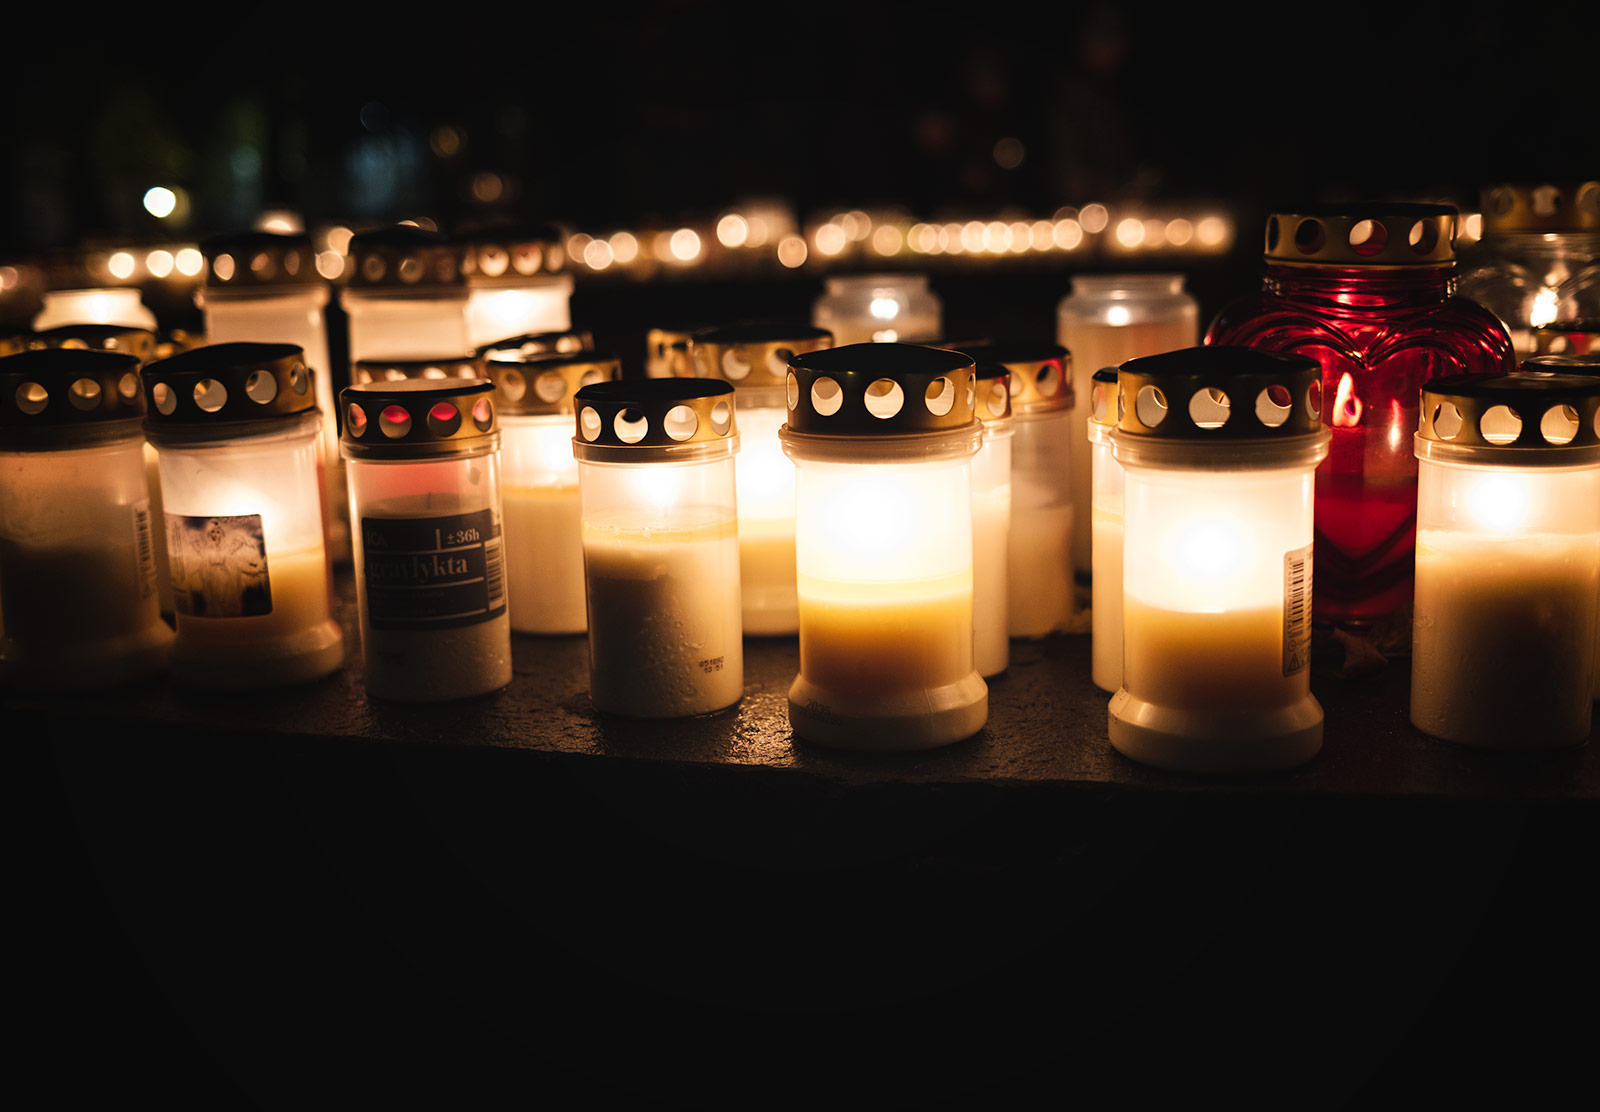 Row of candles in jars